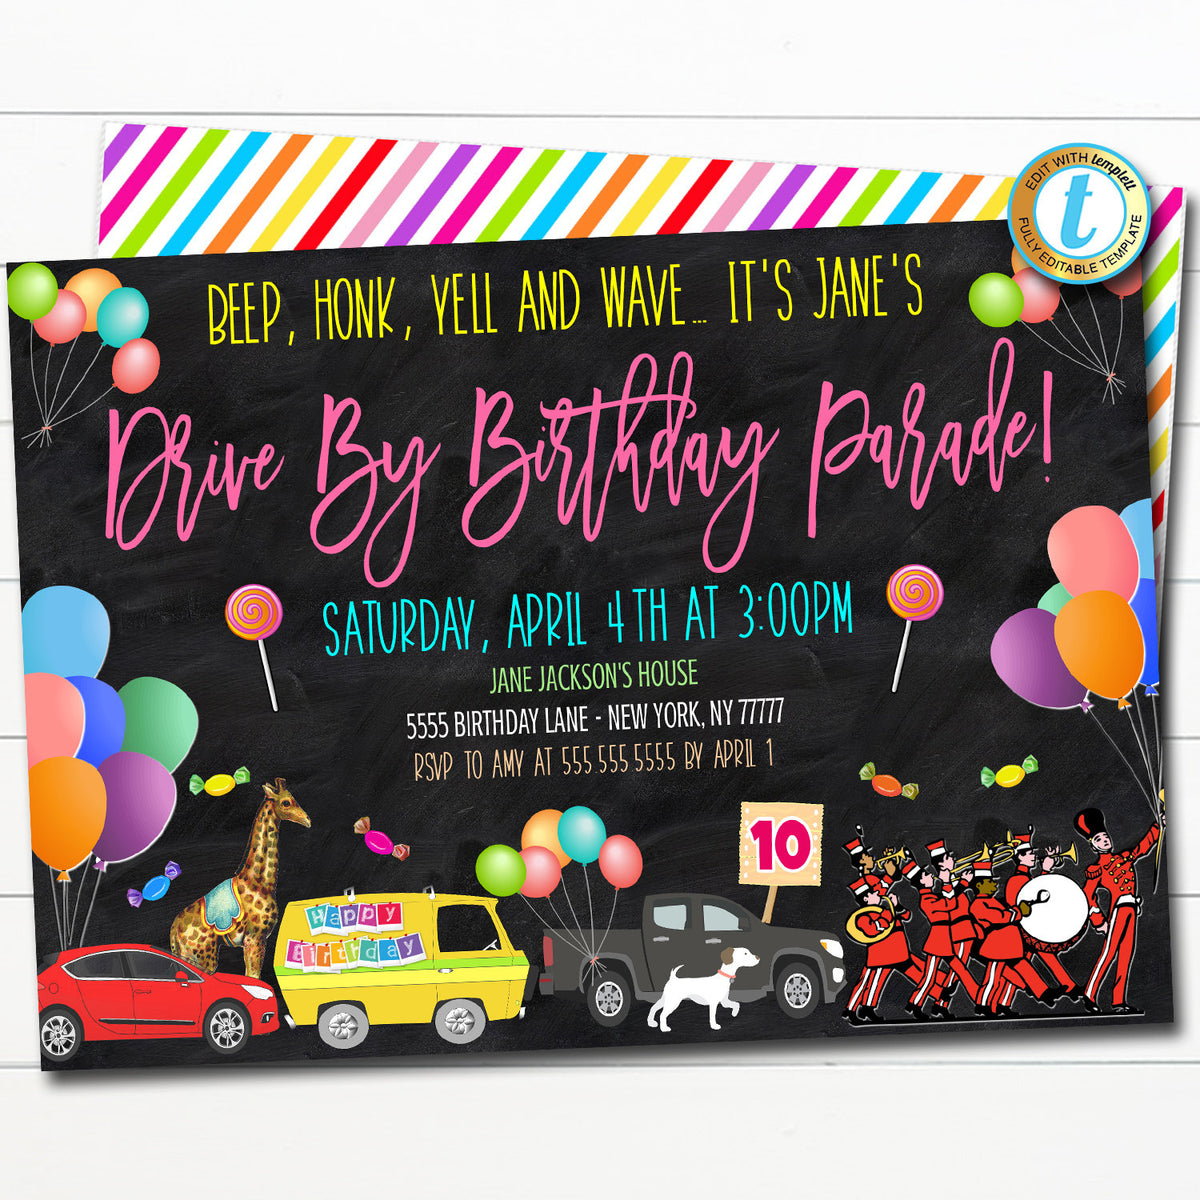 drive by birthday parade invite